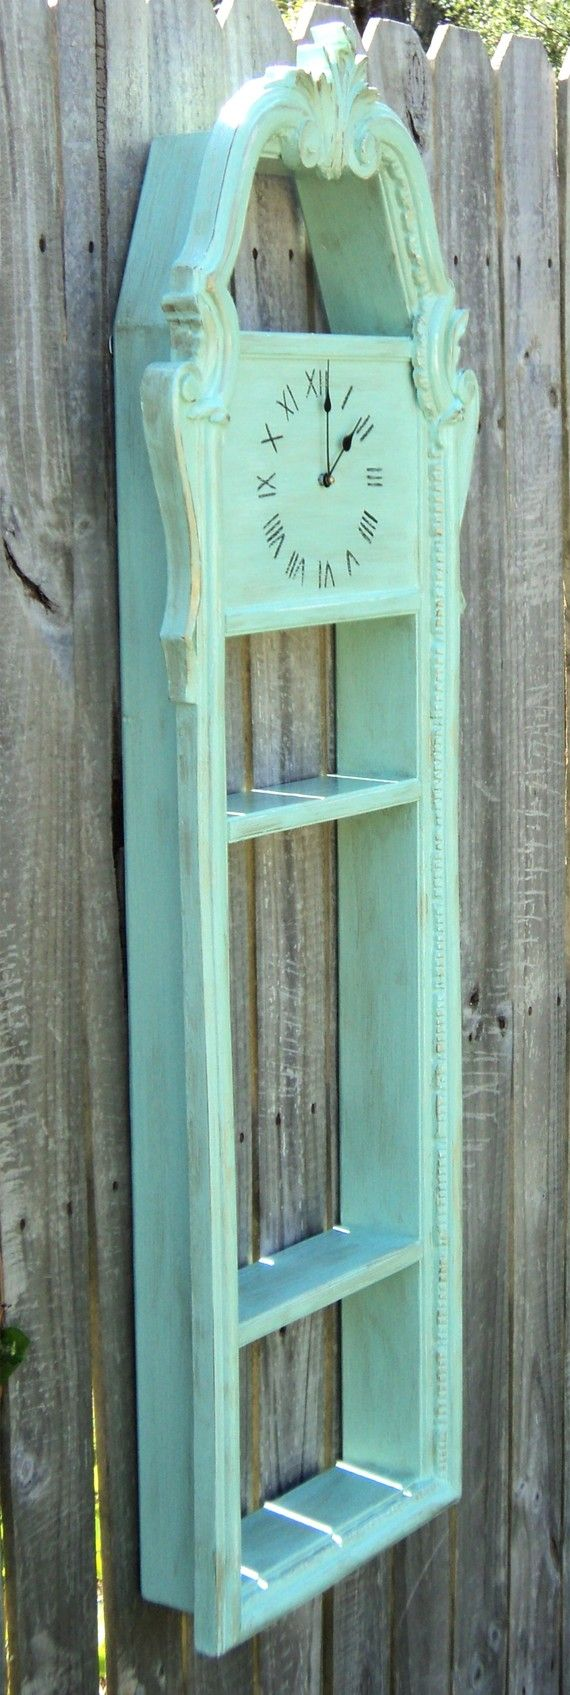 Large AQUA GREEN Upcycled Vintage Framed Display Shelf Clock Living Room